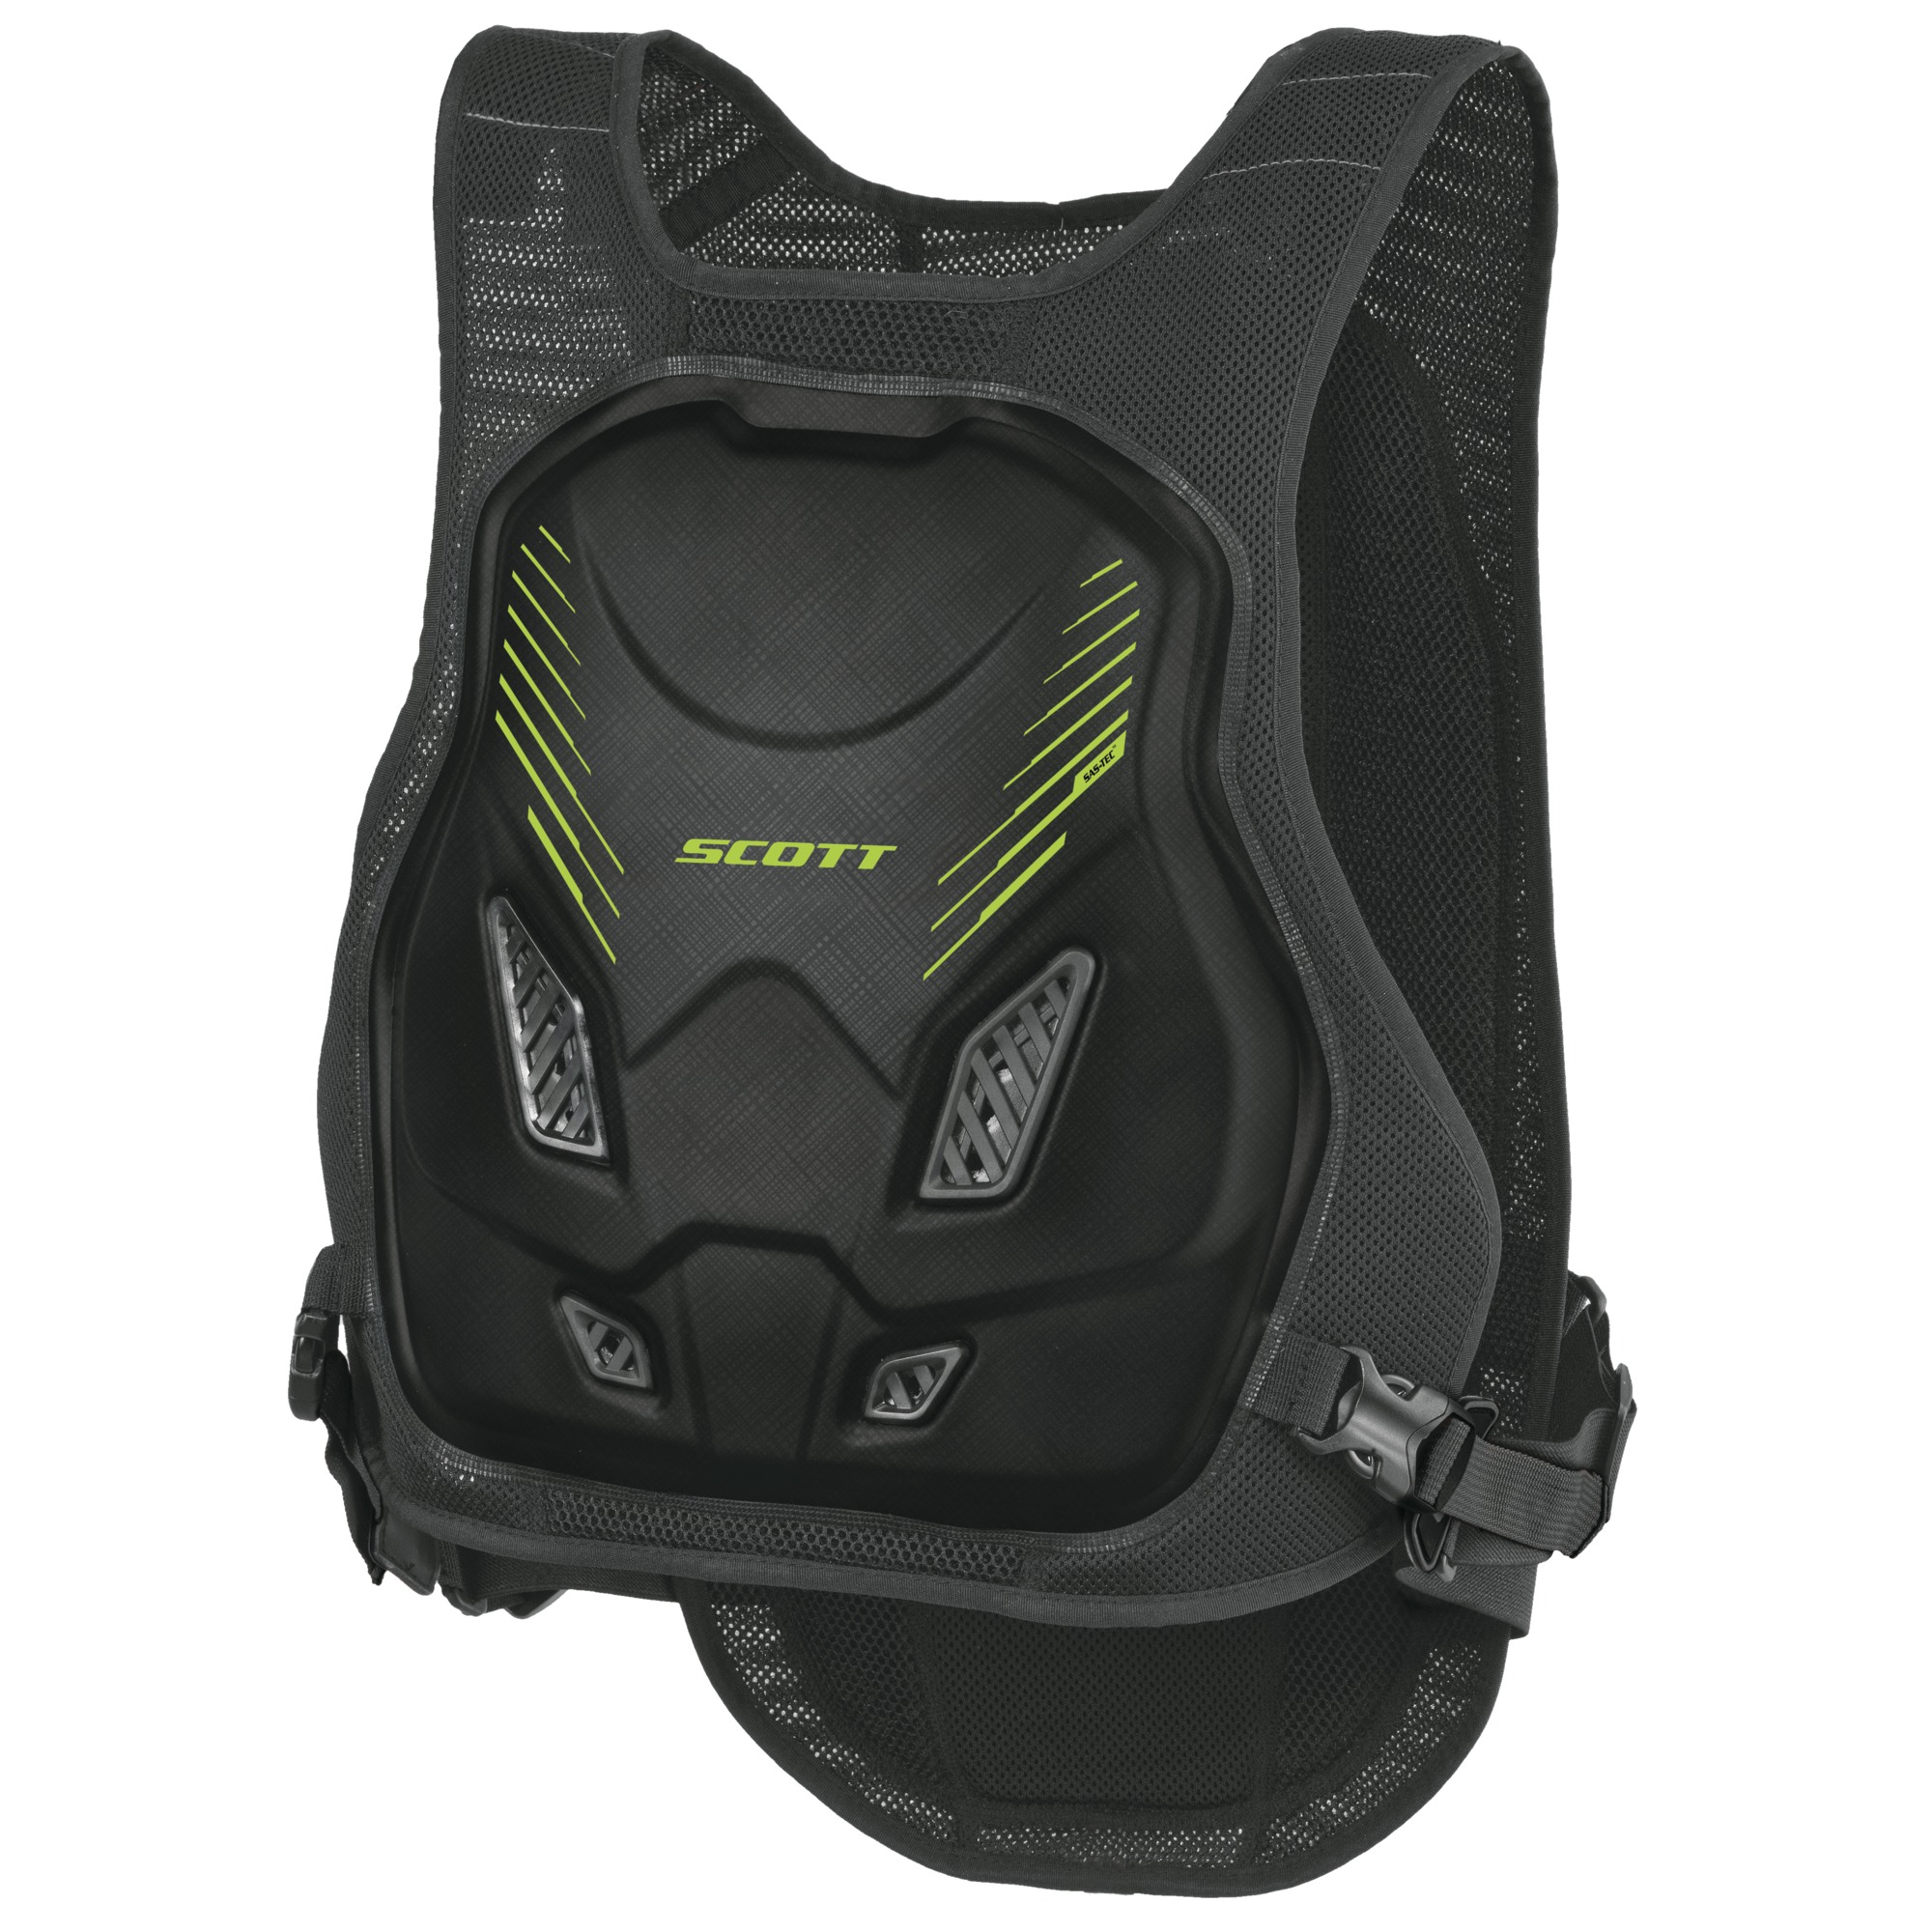 Body Armor Softcon